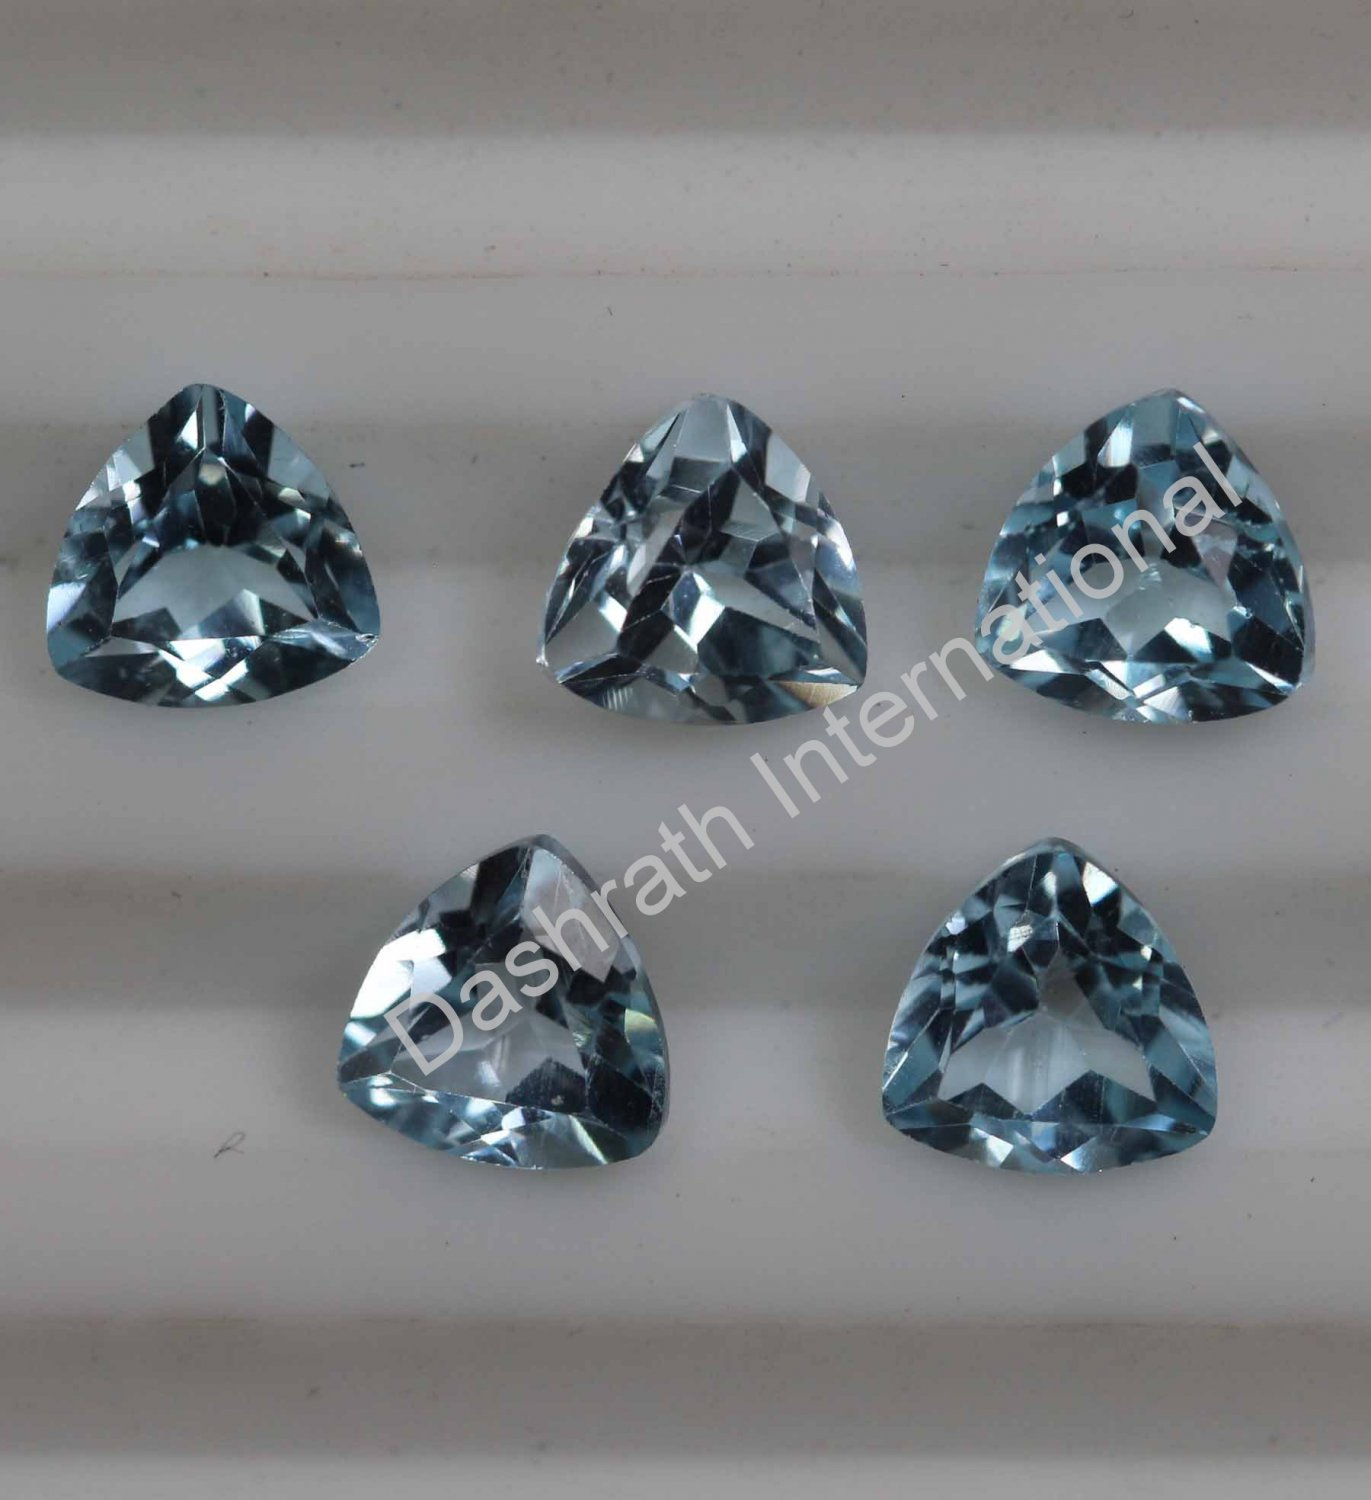 6mm Natural Sky Blue Topaz Faceted Cut Trillion 100 Pieces Lot Top Quality Loose Gemstone